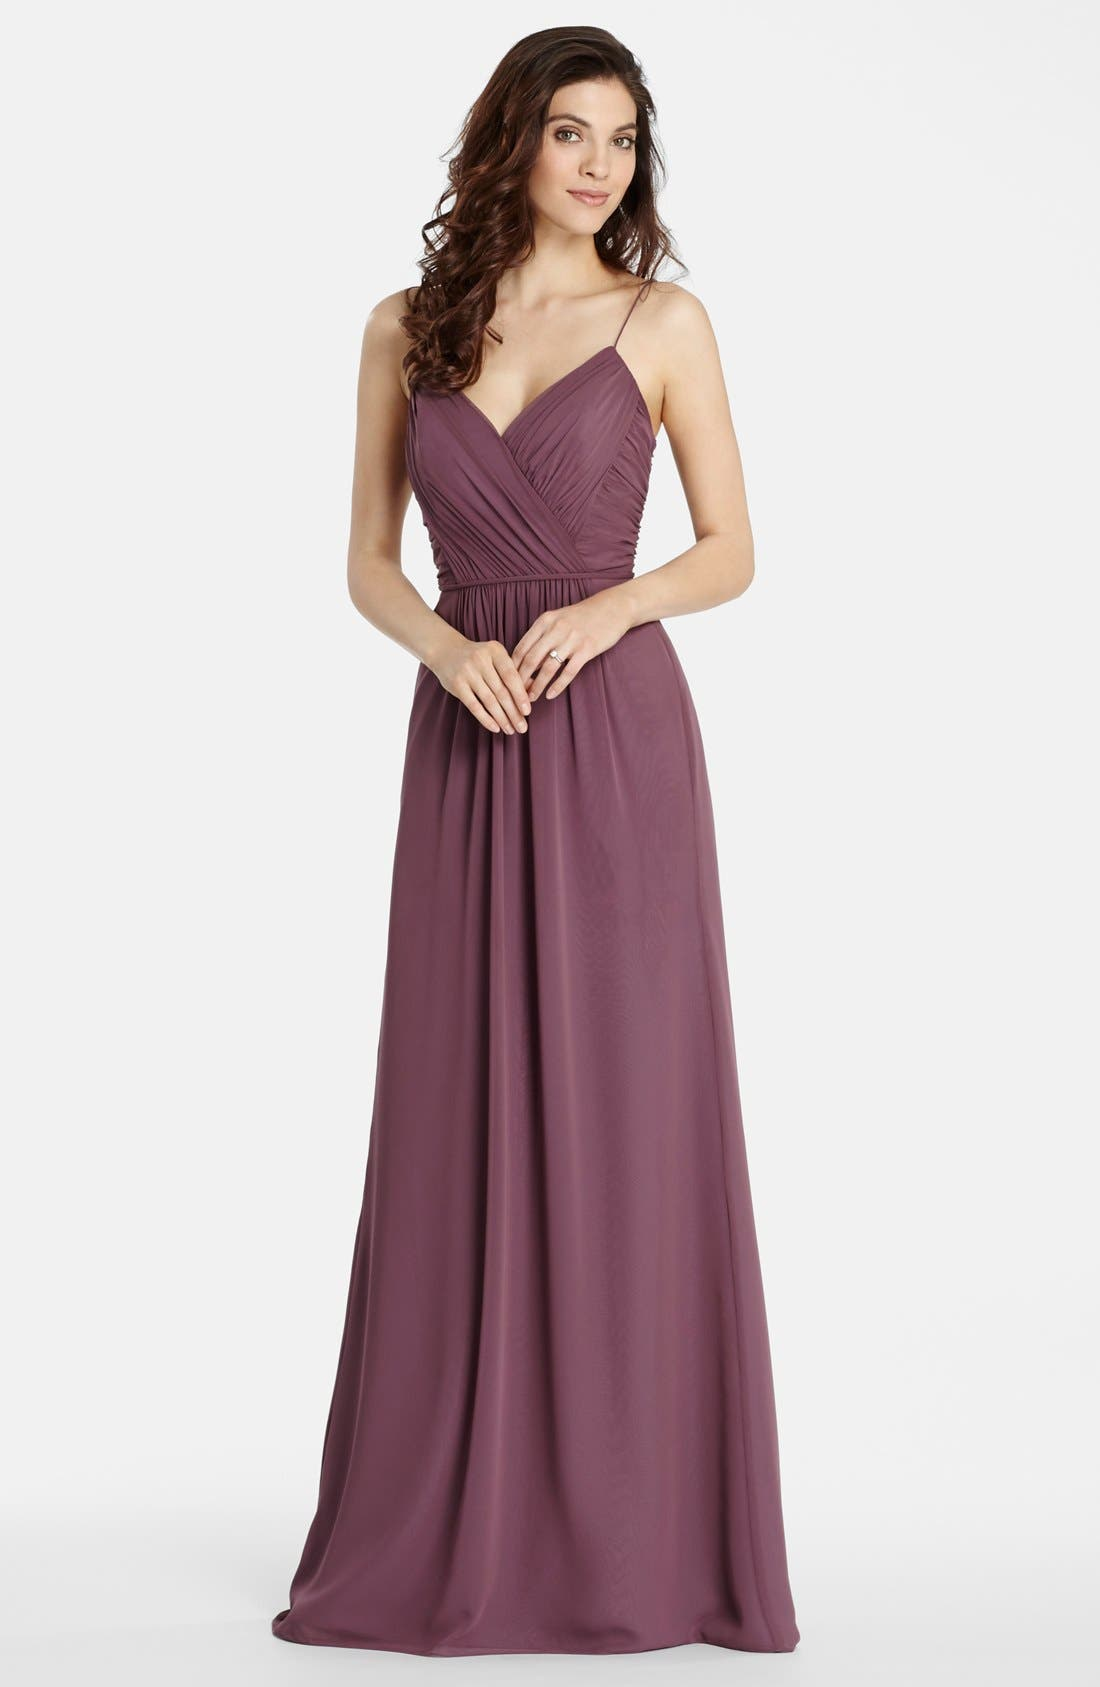 Draped V-Neck A-Line Chiffon Gown,                             Main thumbnail 1, color,                             Frosted Violet